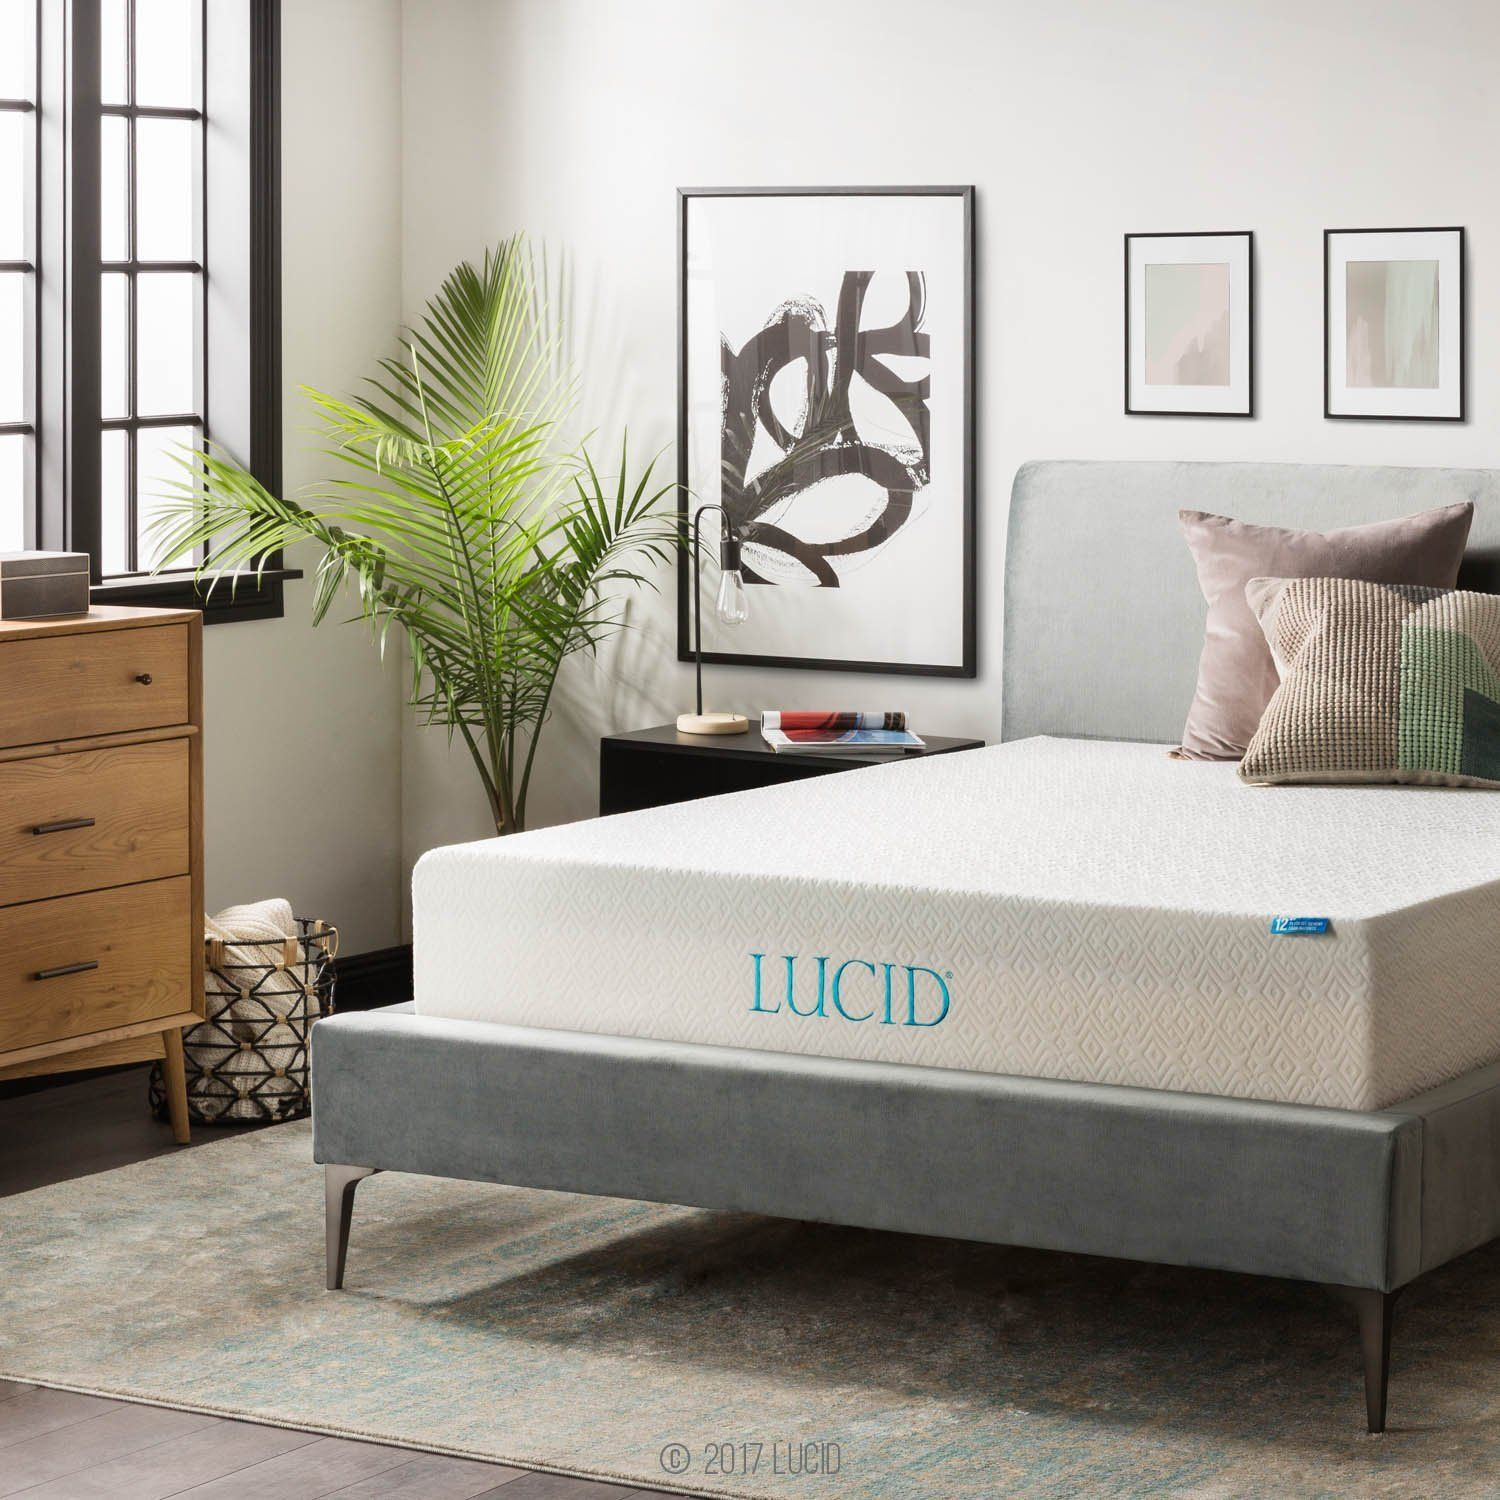 Lucid 12 Inch Memory Foam Mattress Review Soft With Low Budget